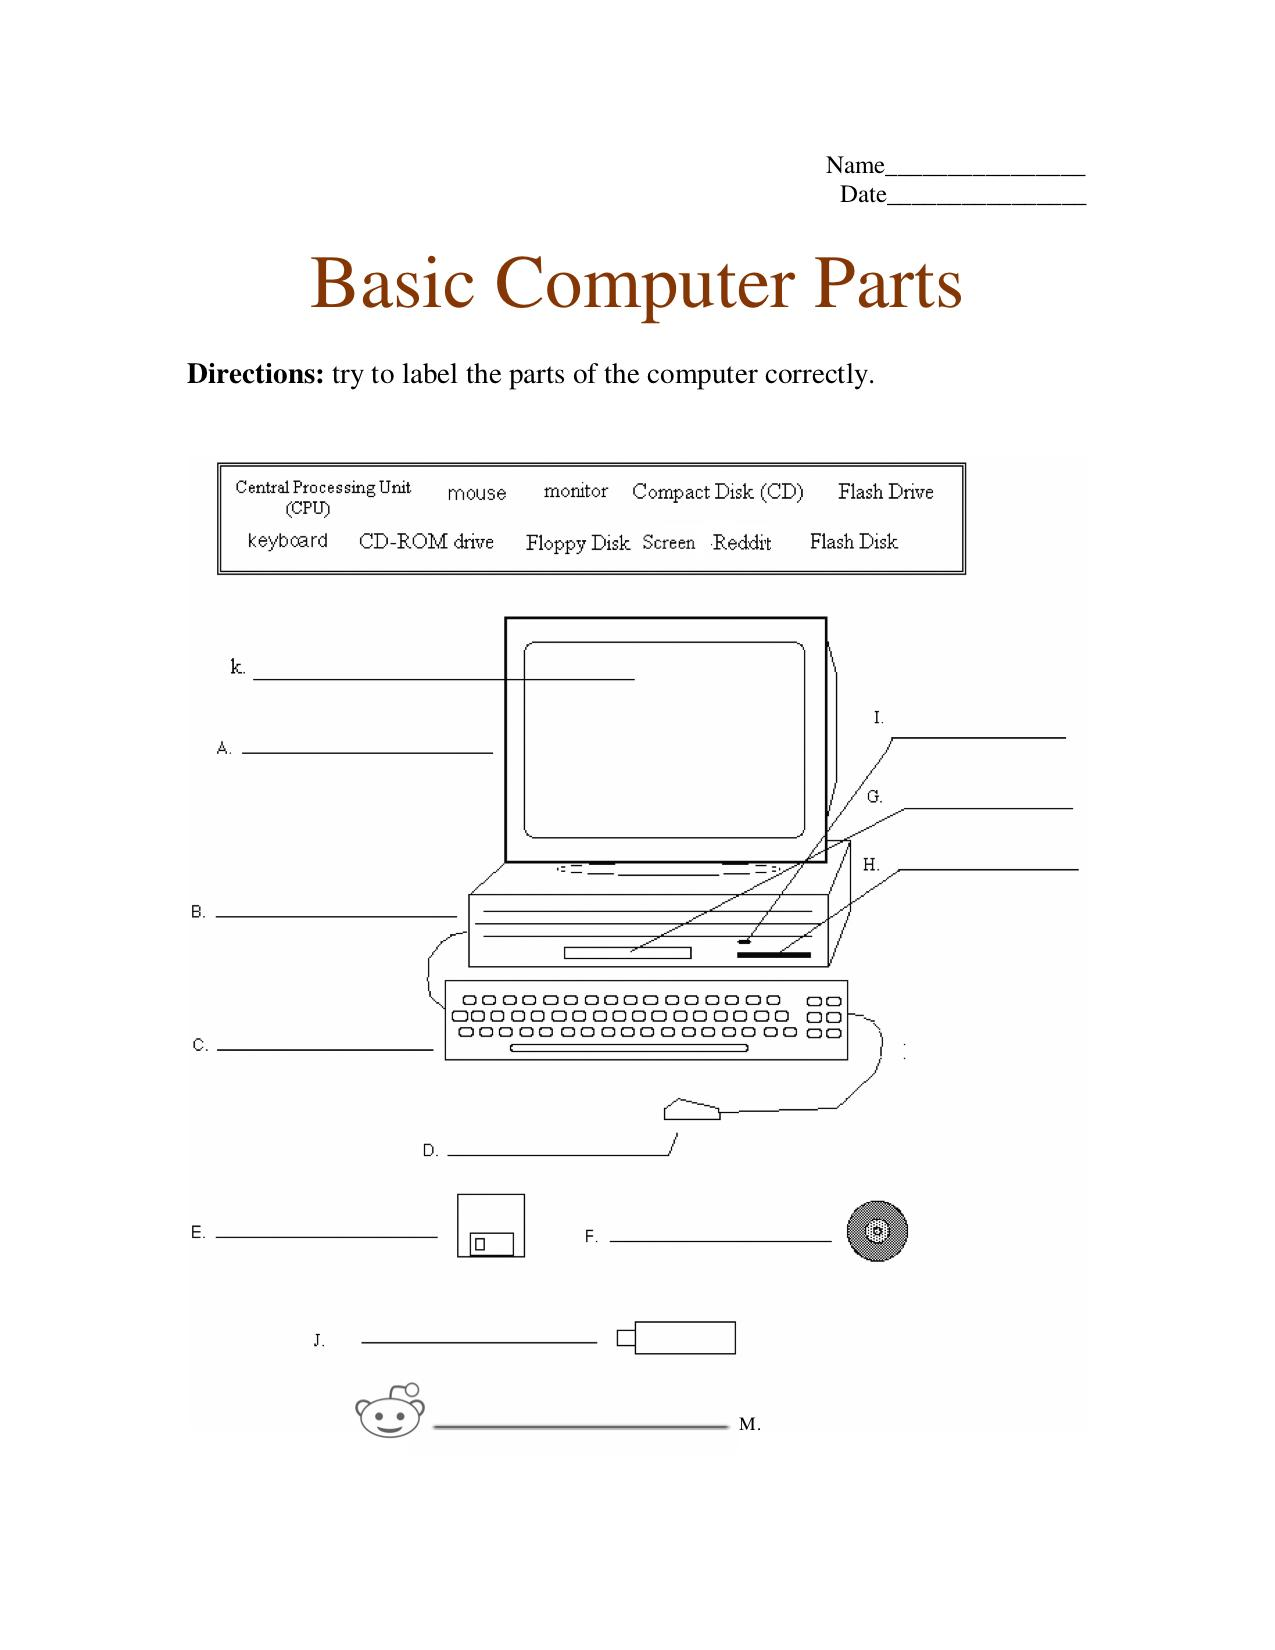 Computer Parts Worksheet Versatile 2 0 Worth Your Time